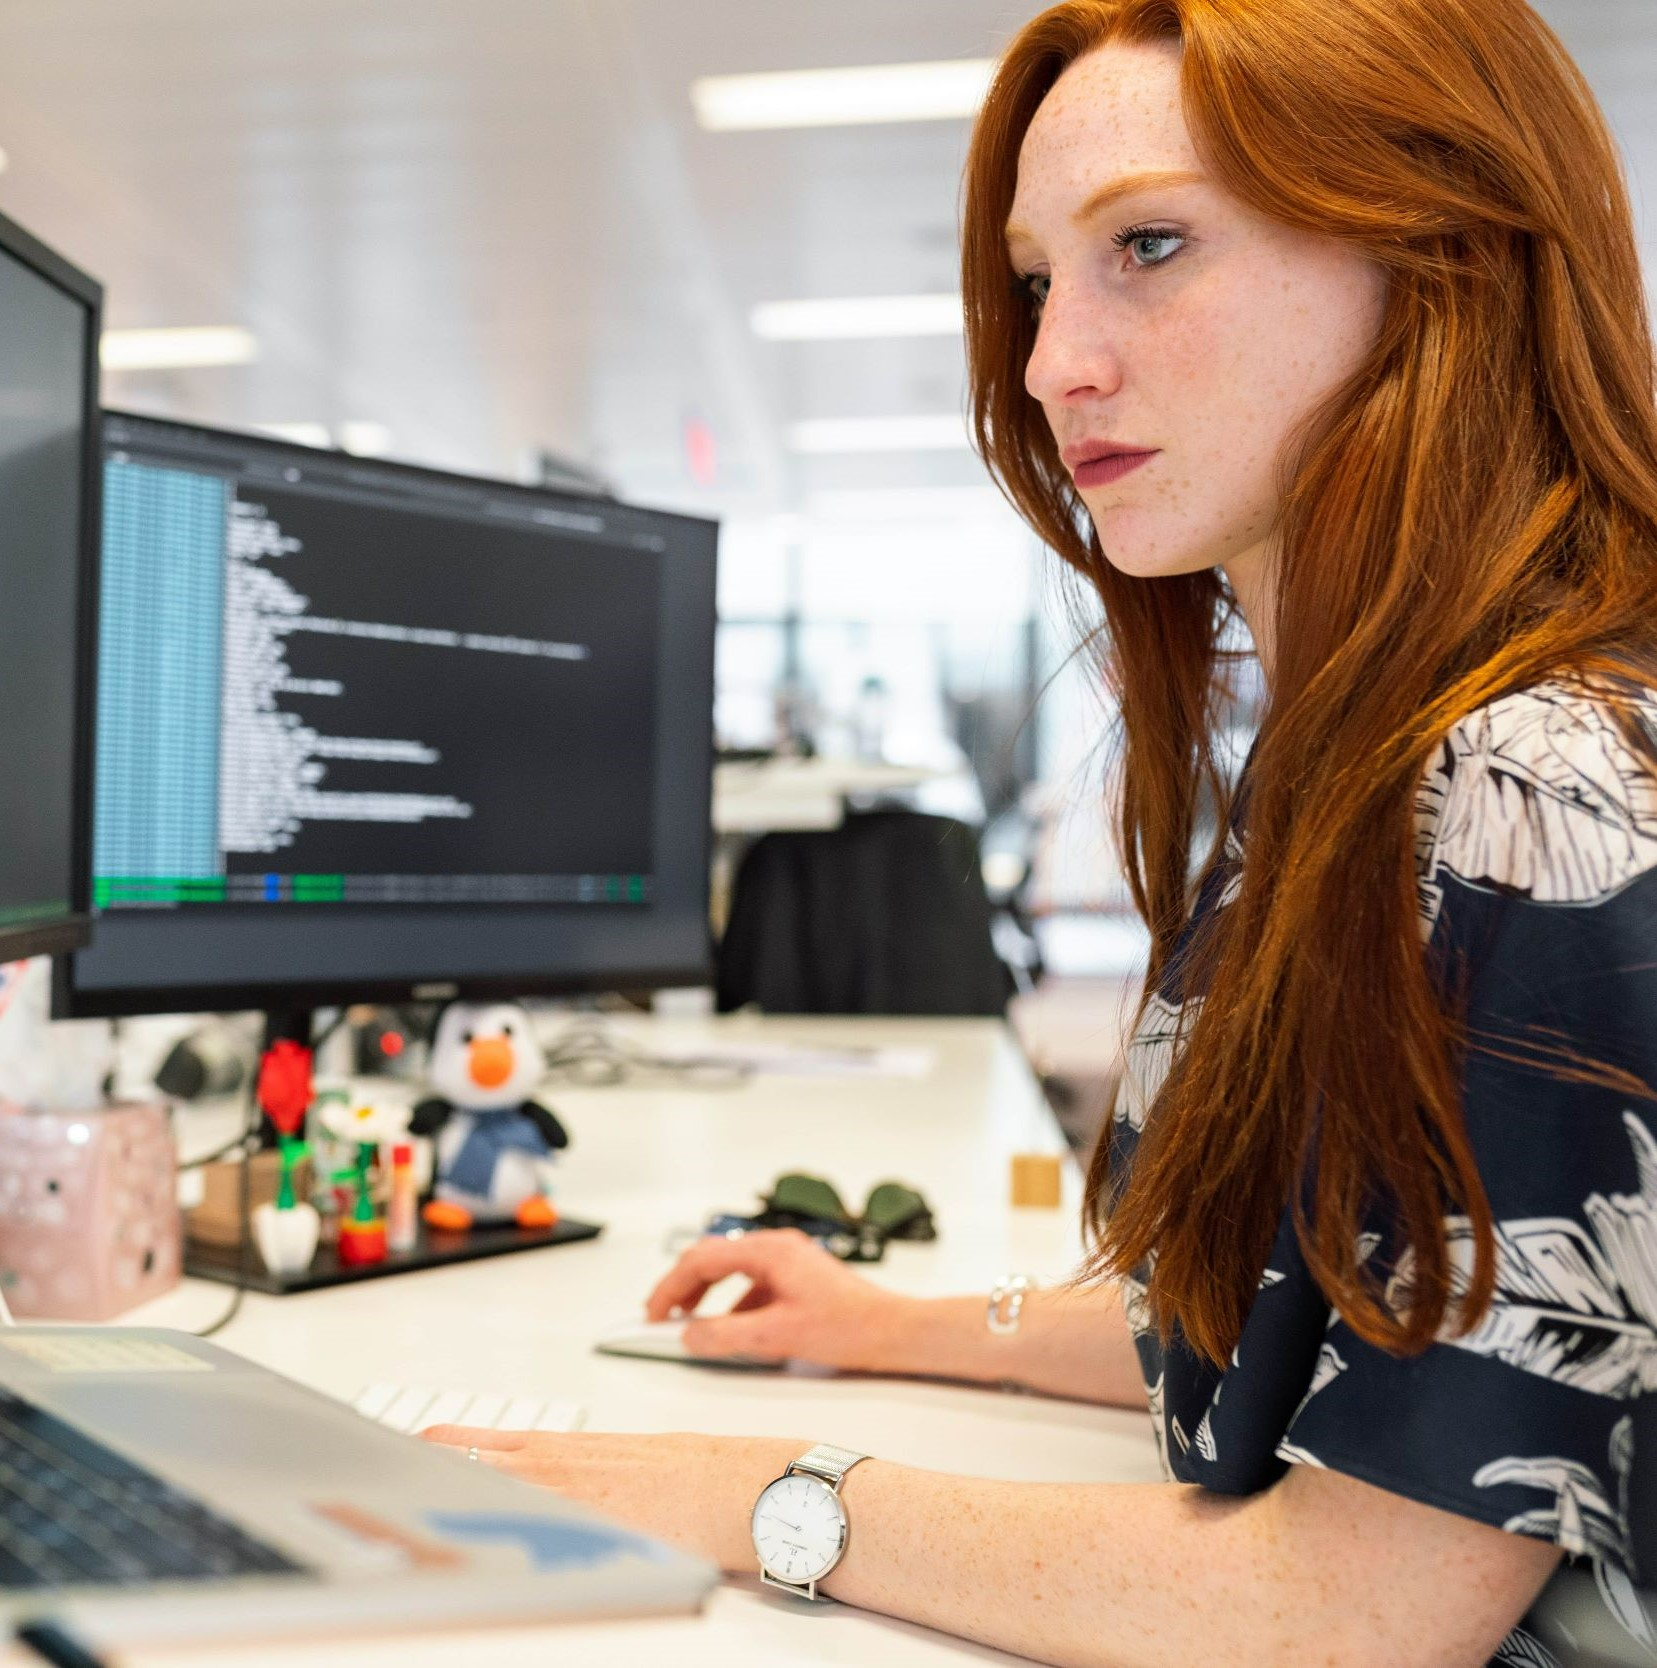 young professional shown coding at a desk